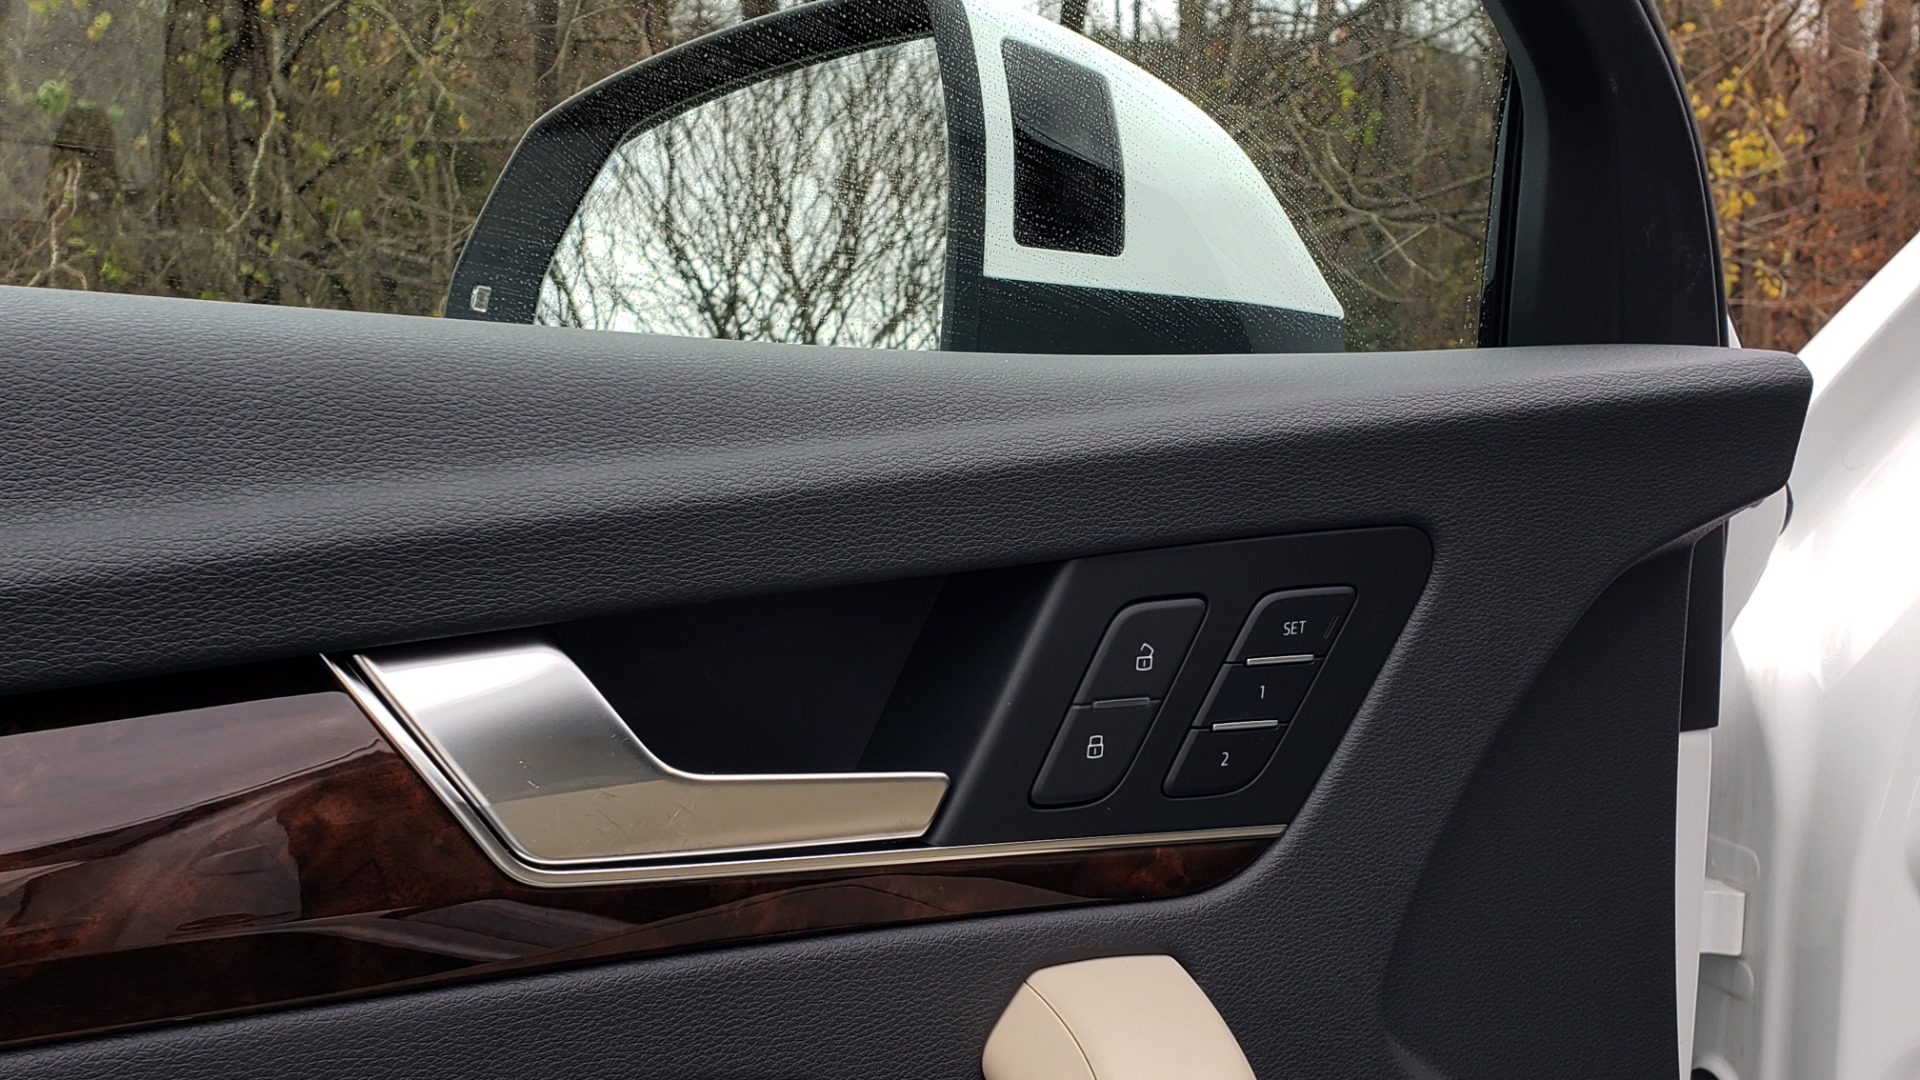 Used 2018 Audi Q5 PREMIUM PLUS / NAV PKG / SUNROOF / CLD WTHR / REARVIEW for sale Sold at Formula Imports in Charlotte NC 28227 36